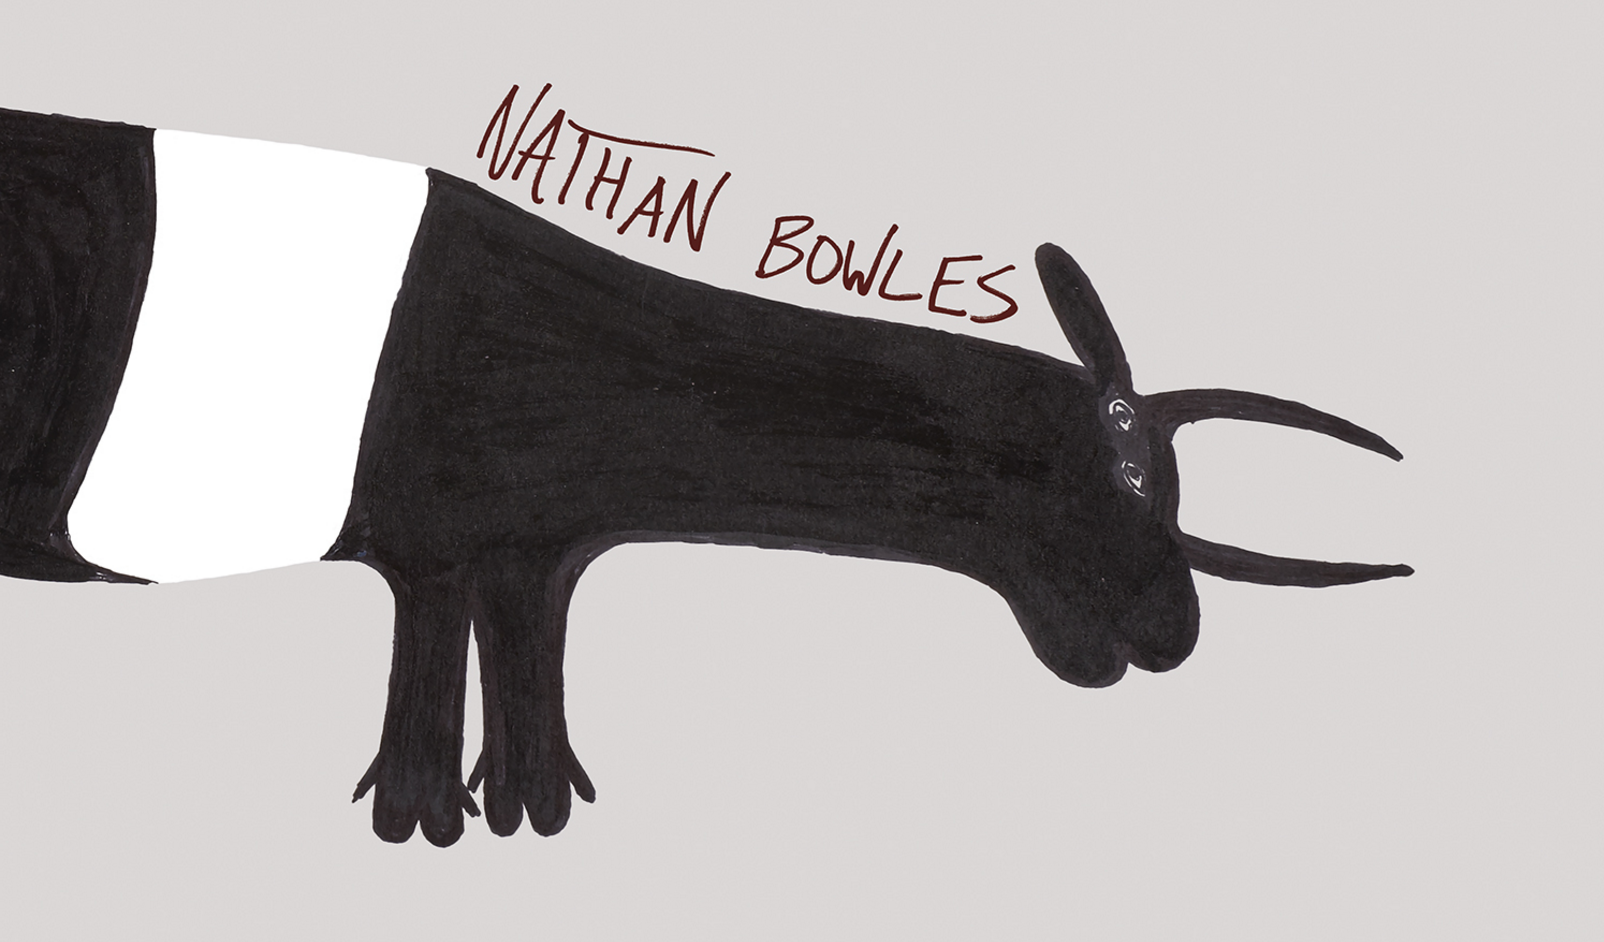 Nathan Bowles: Whole & Cloven